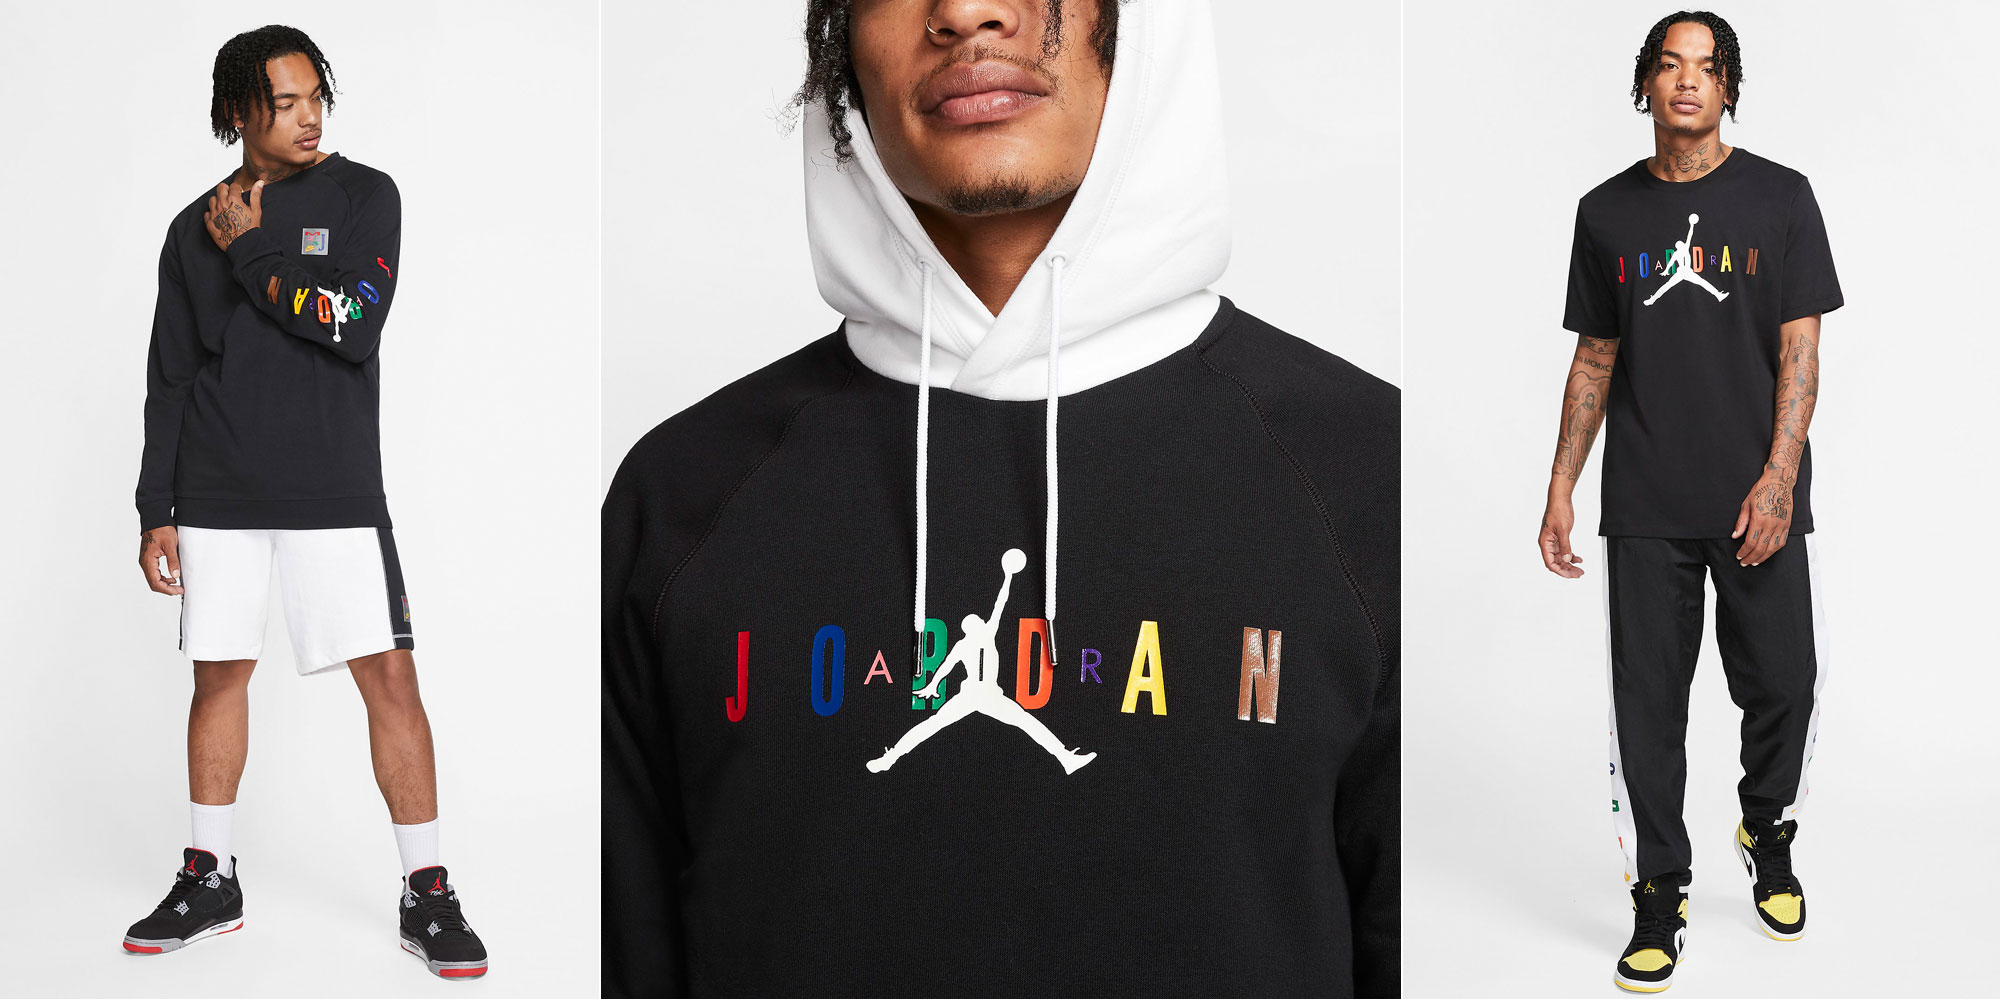 jordan-sport-dna-multi-color-apparel